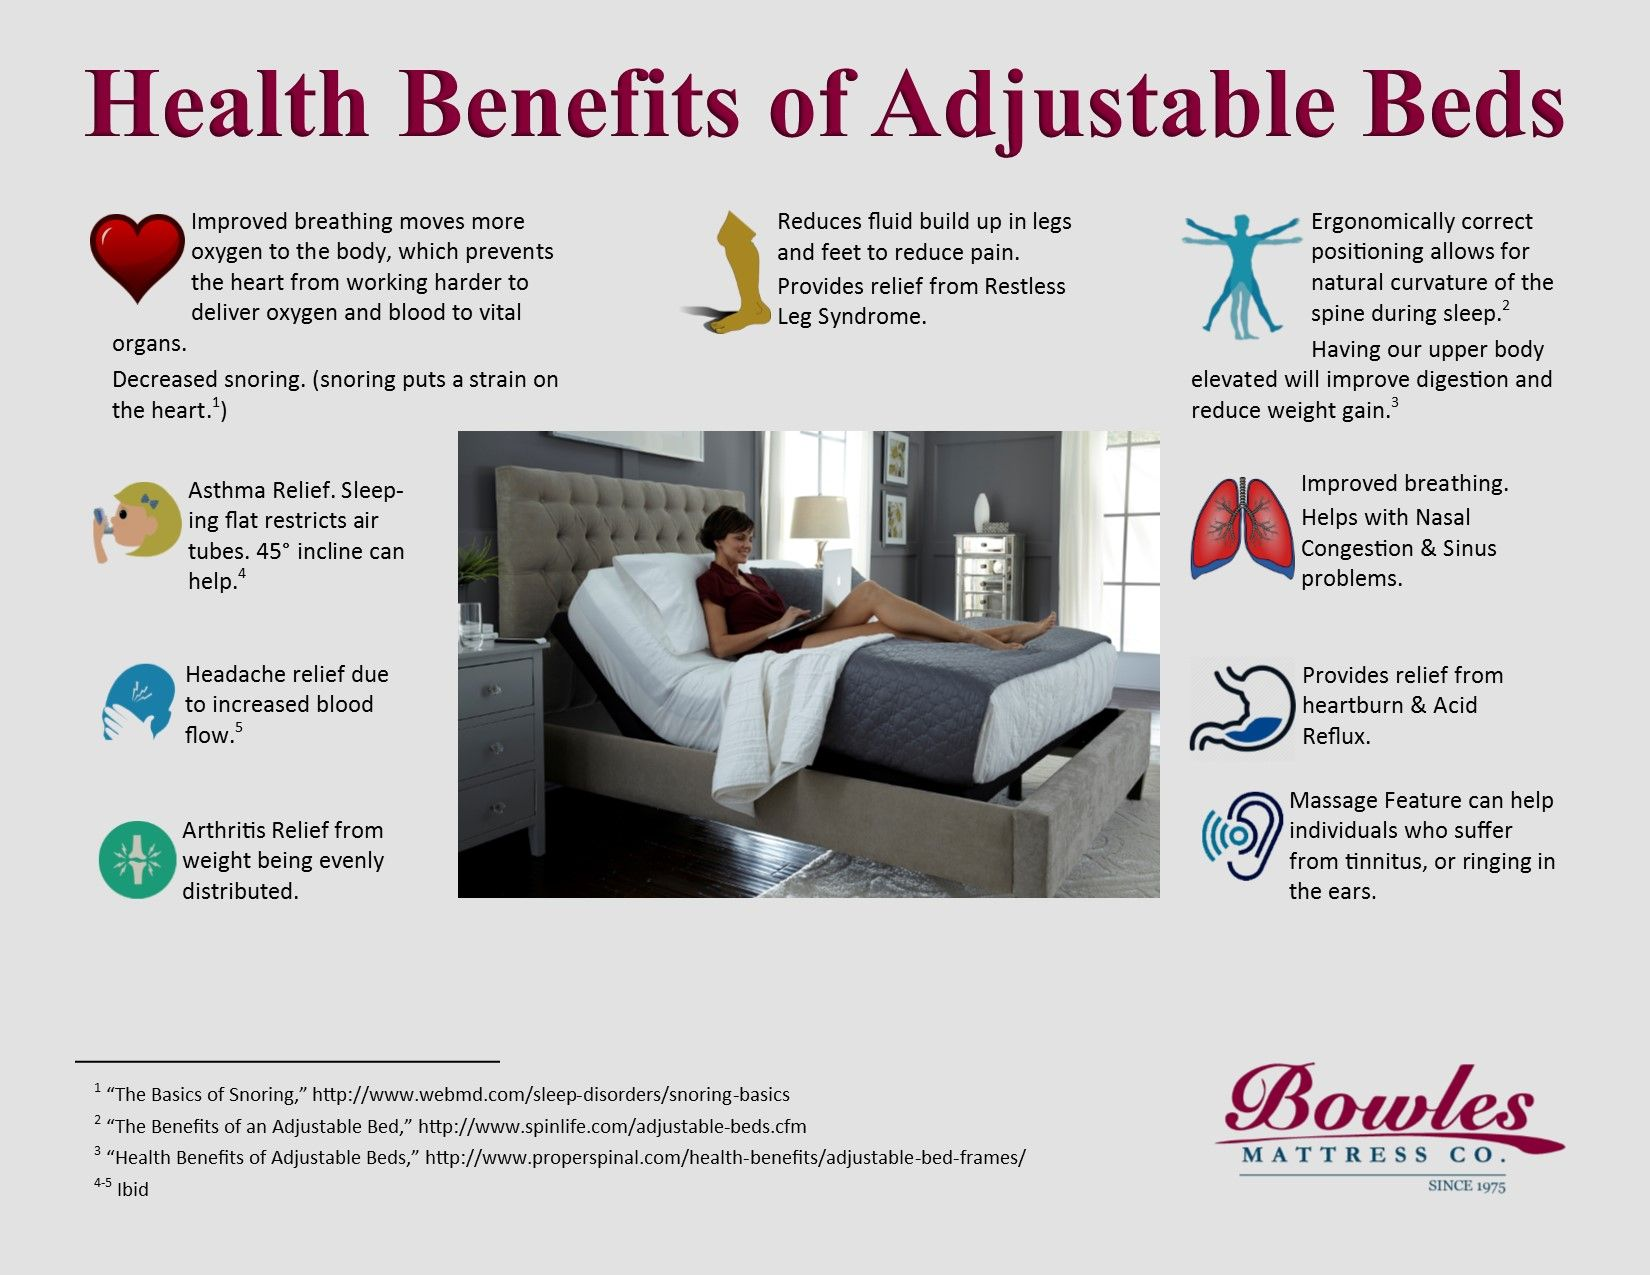 health benefits of adjustable beds handy information gathered by